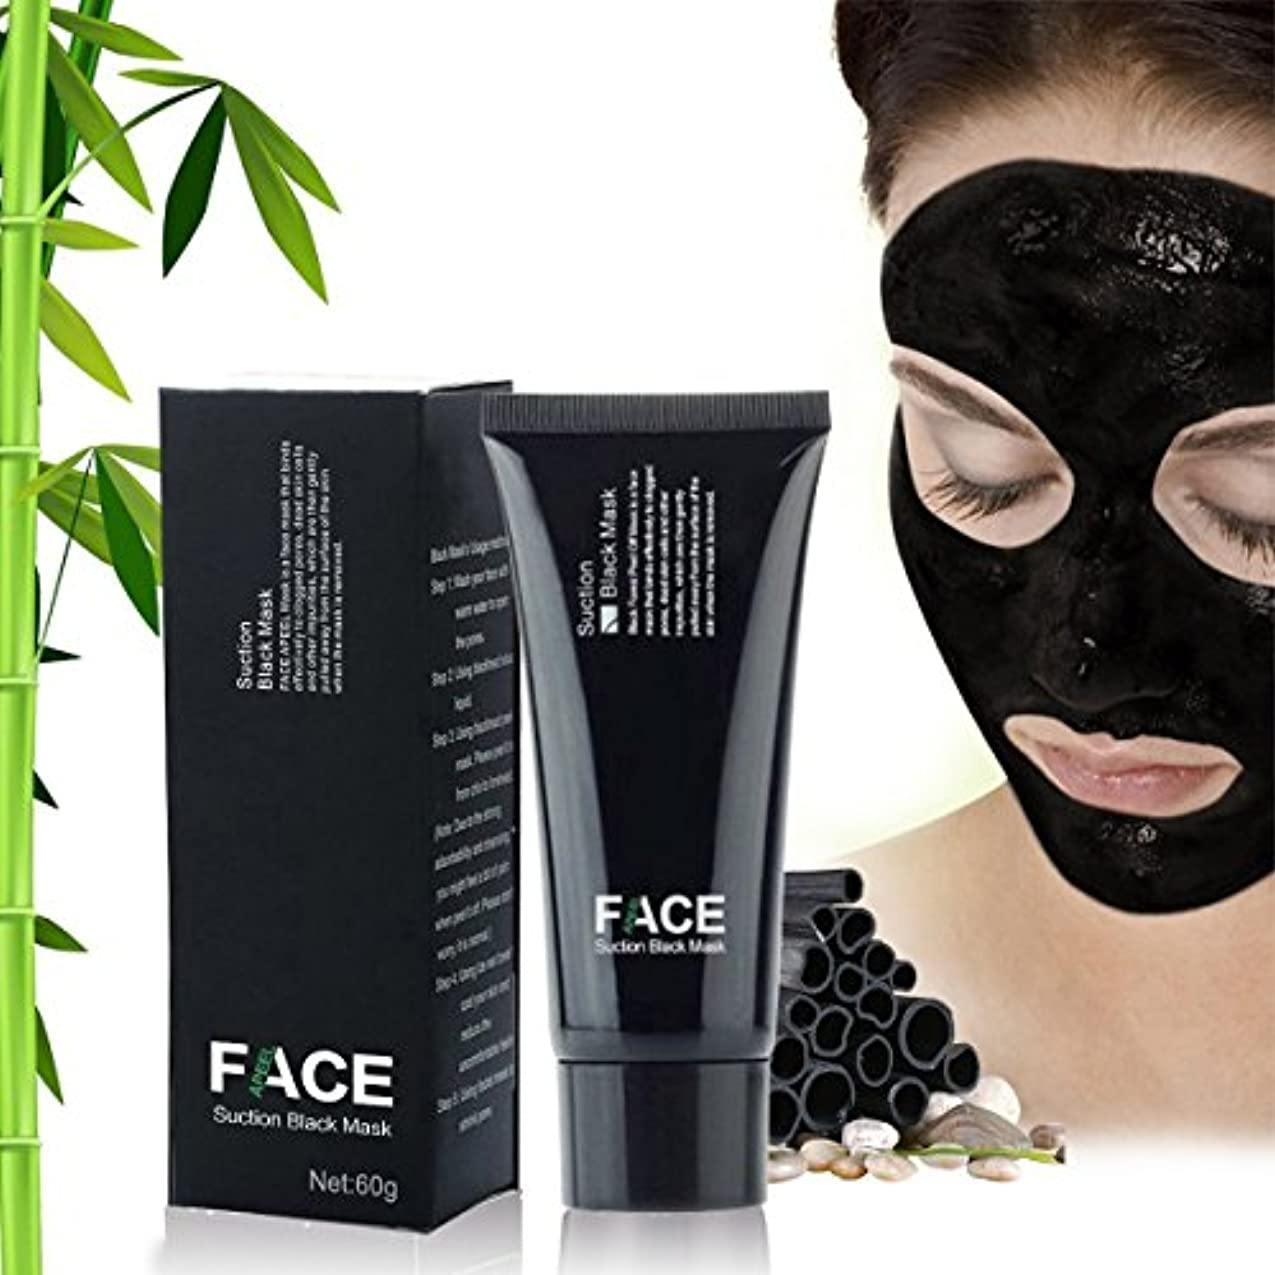 Face Apeel Blackhead Remover - Peel-off Mask for Men and Women - Deep Cleans Better than Pore Strips for Instantly